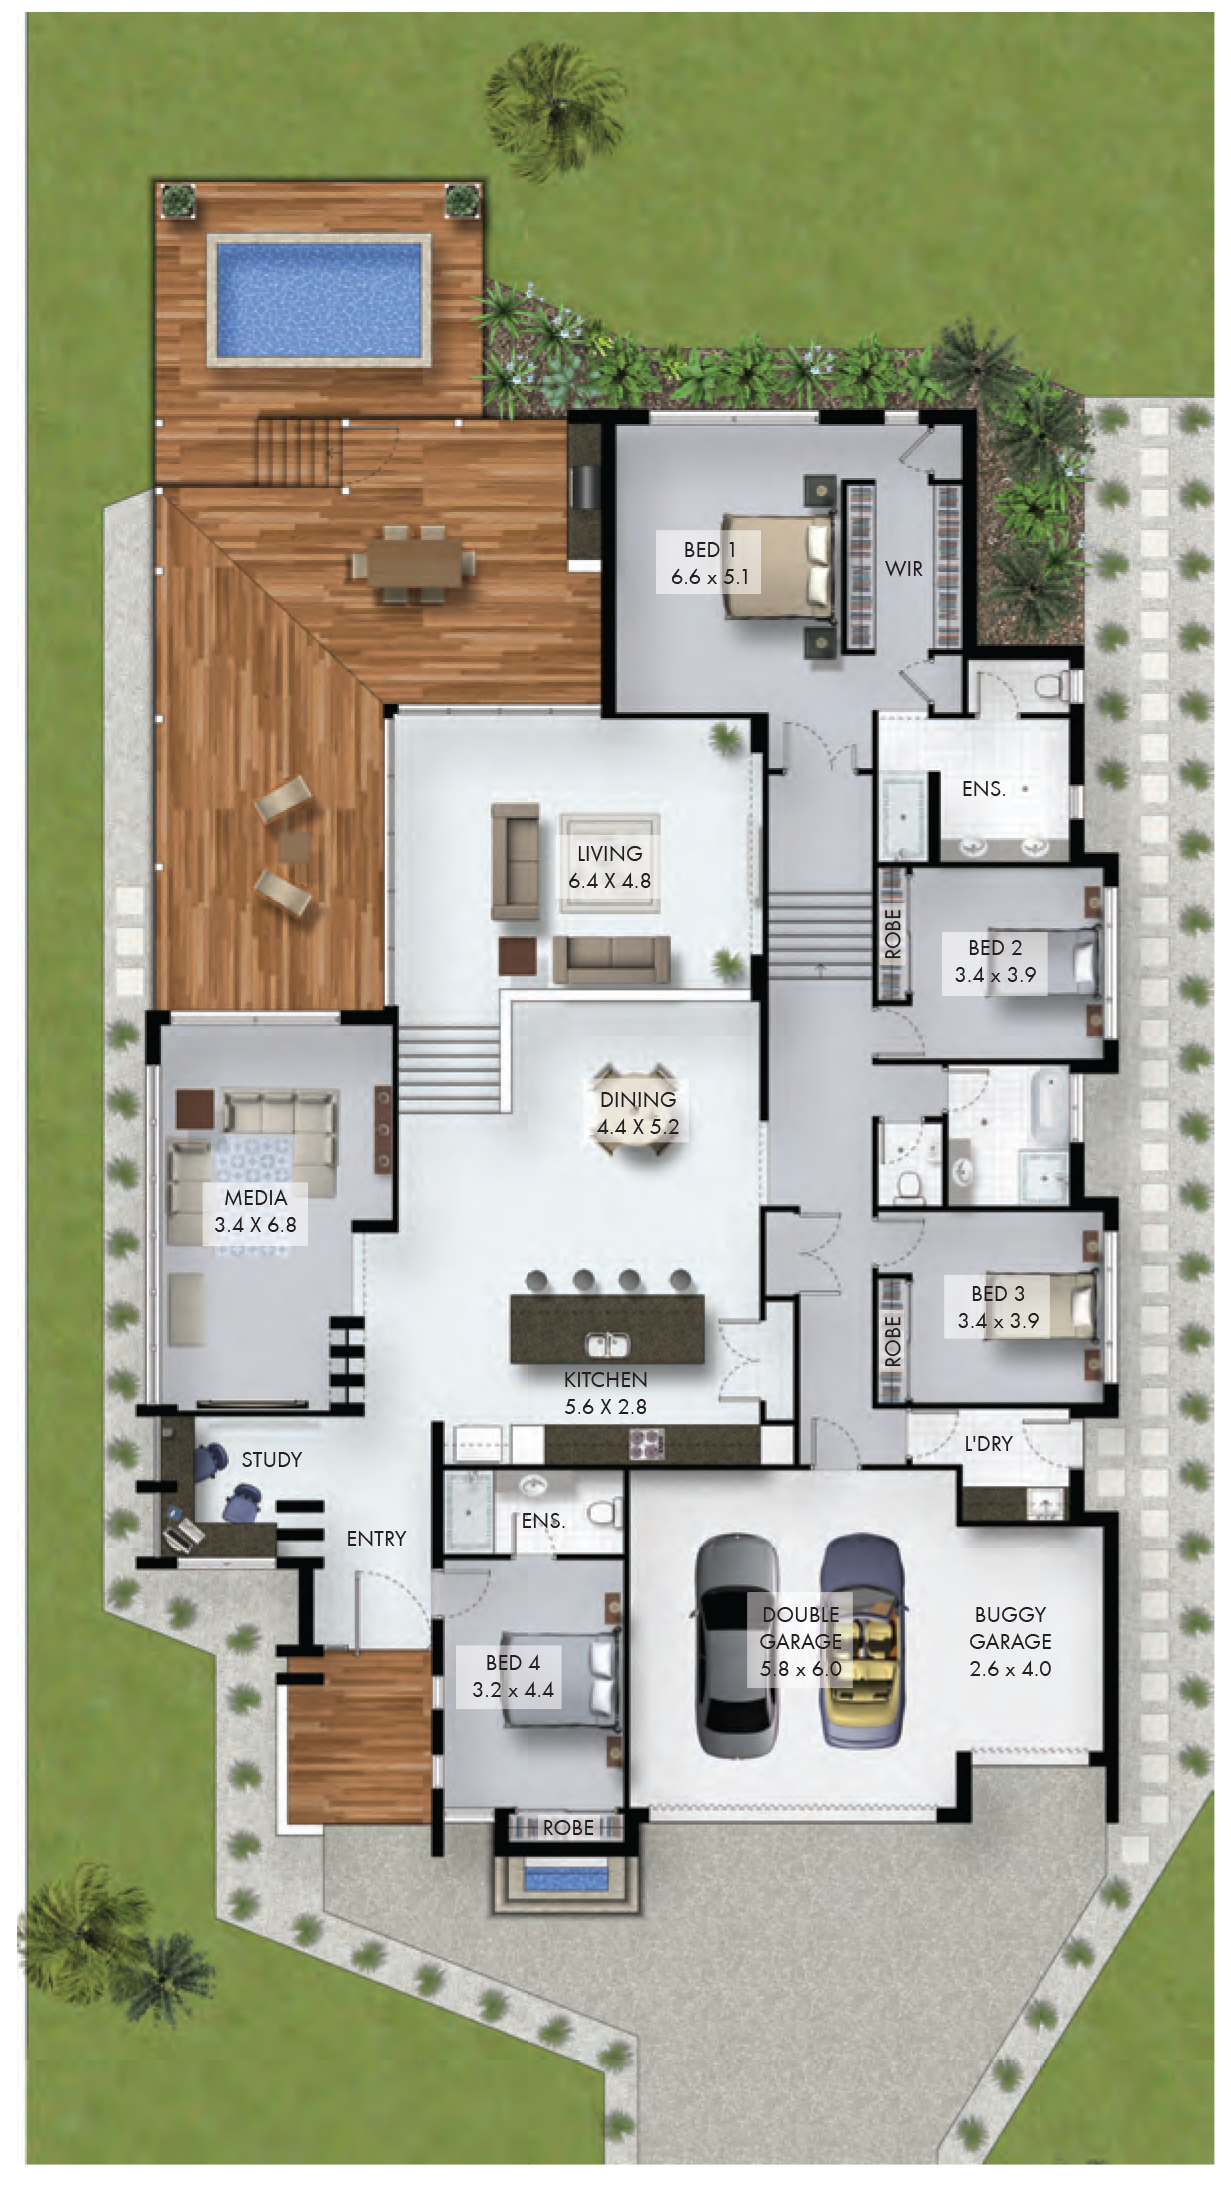 Heres a non fancy 4 bedroom home with study nook and triple car garage which